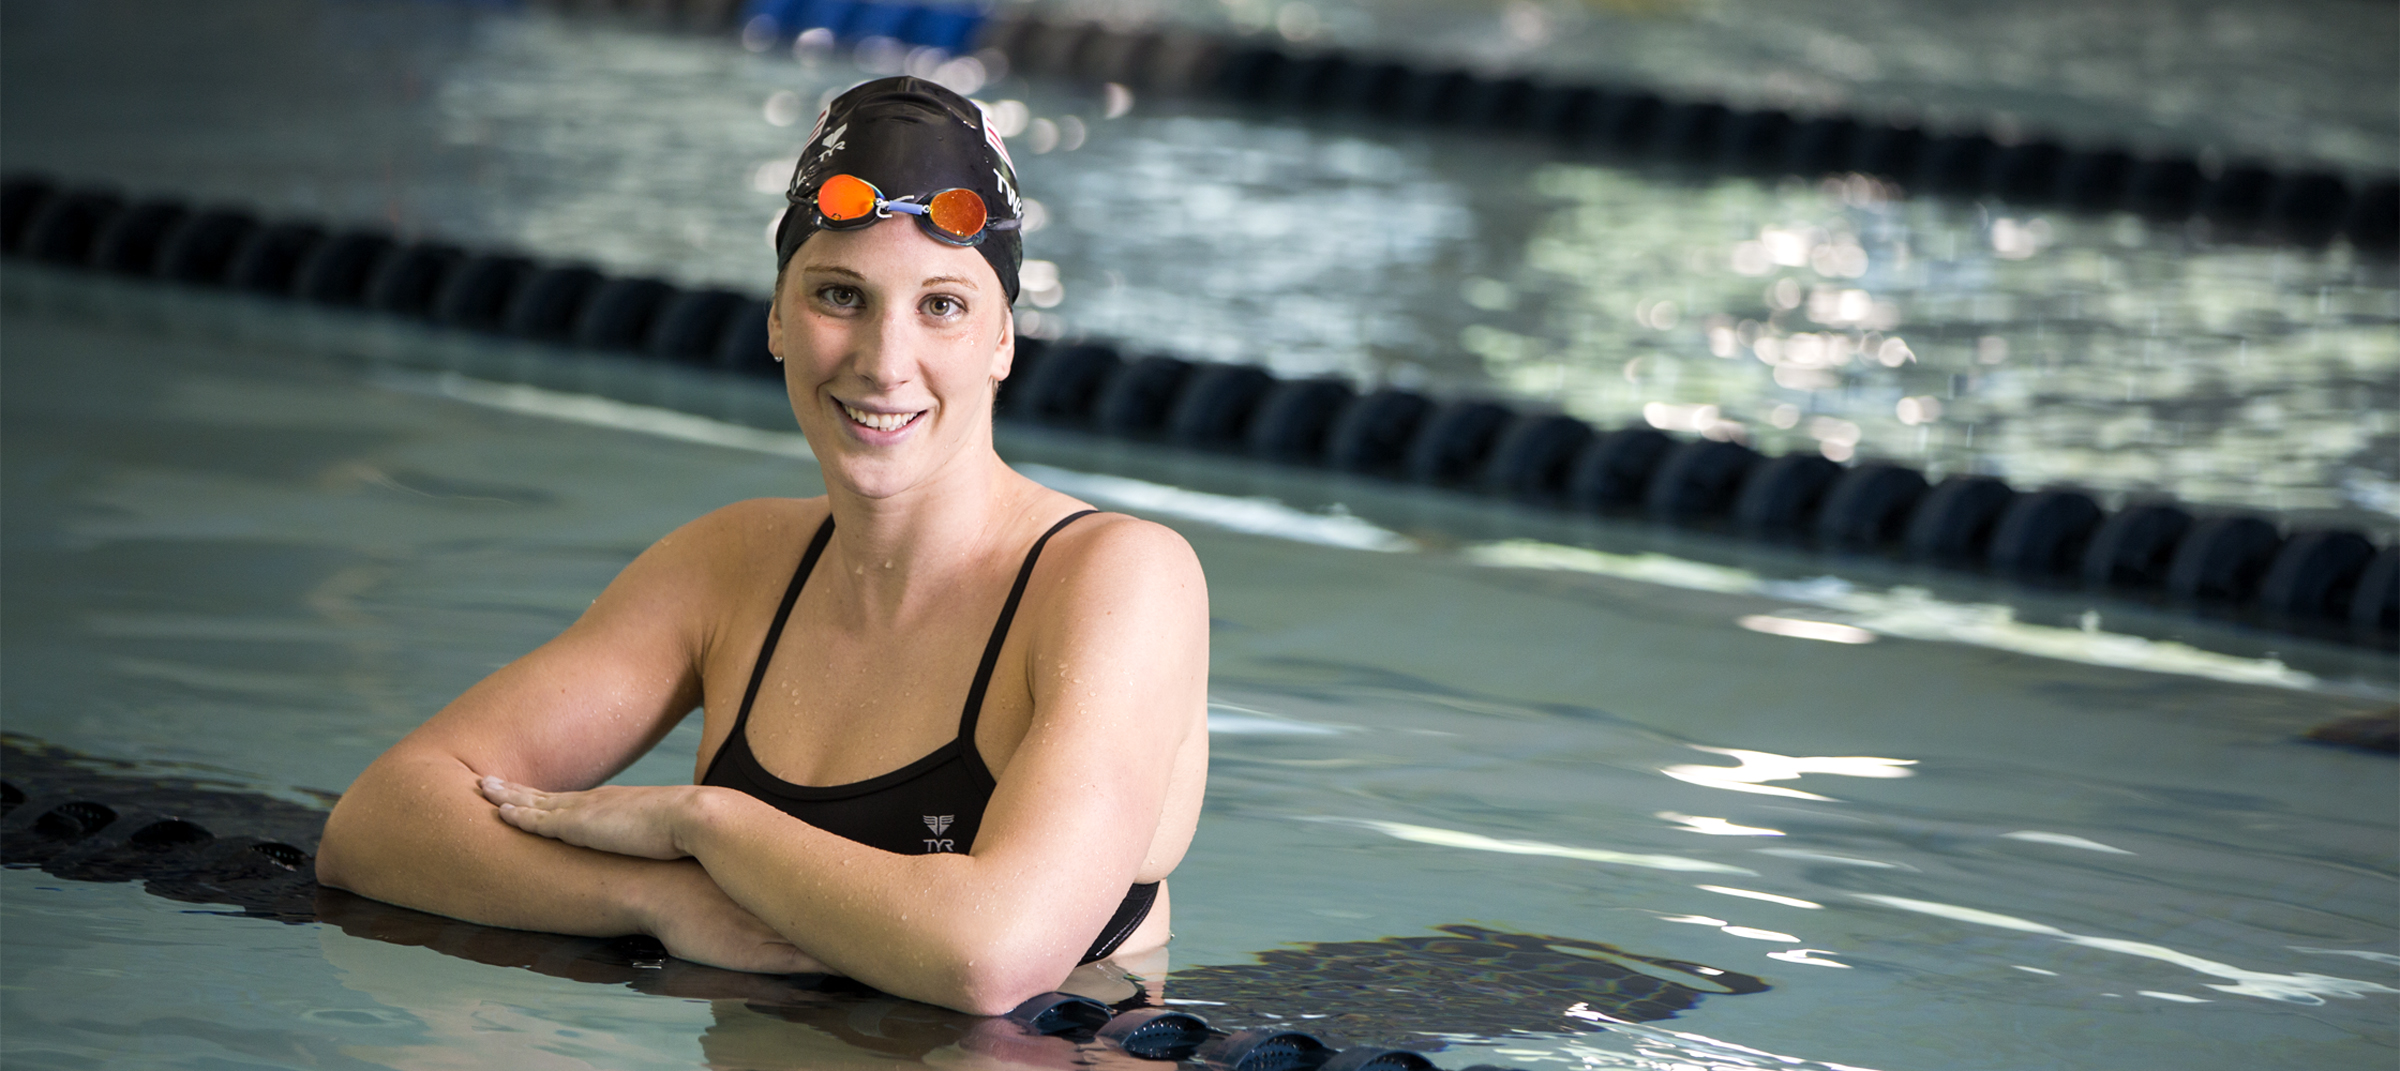 Shoulder surgery at Duke helped swimmer Ashley Twichell compete for Olympic spot